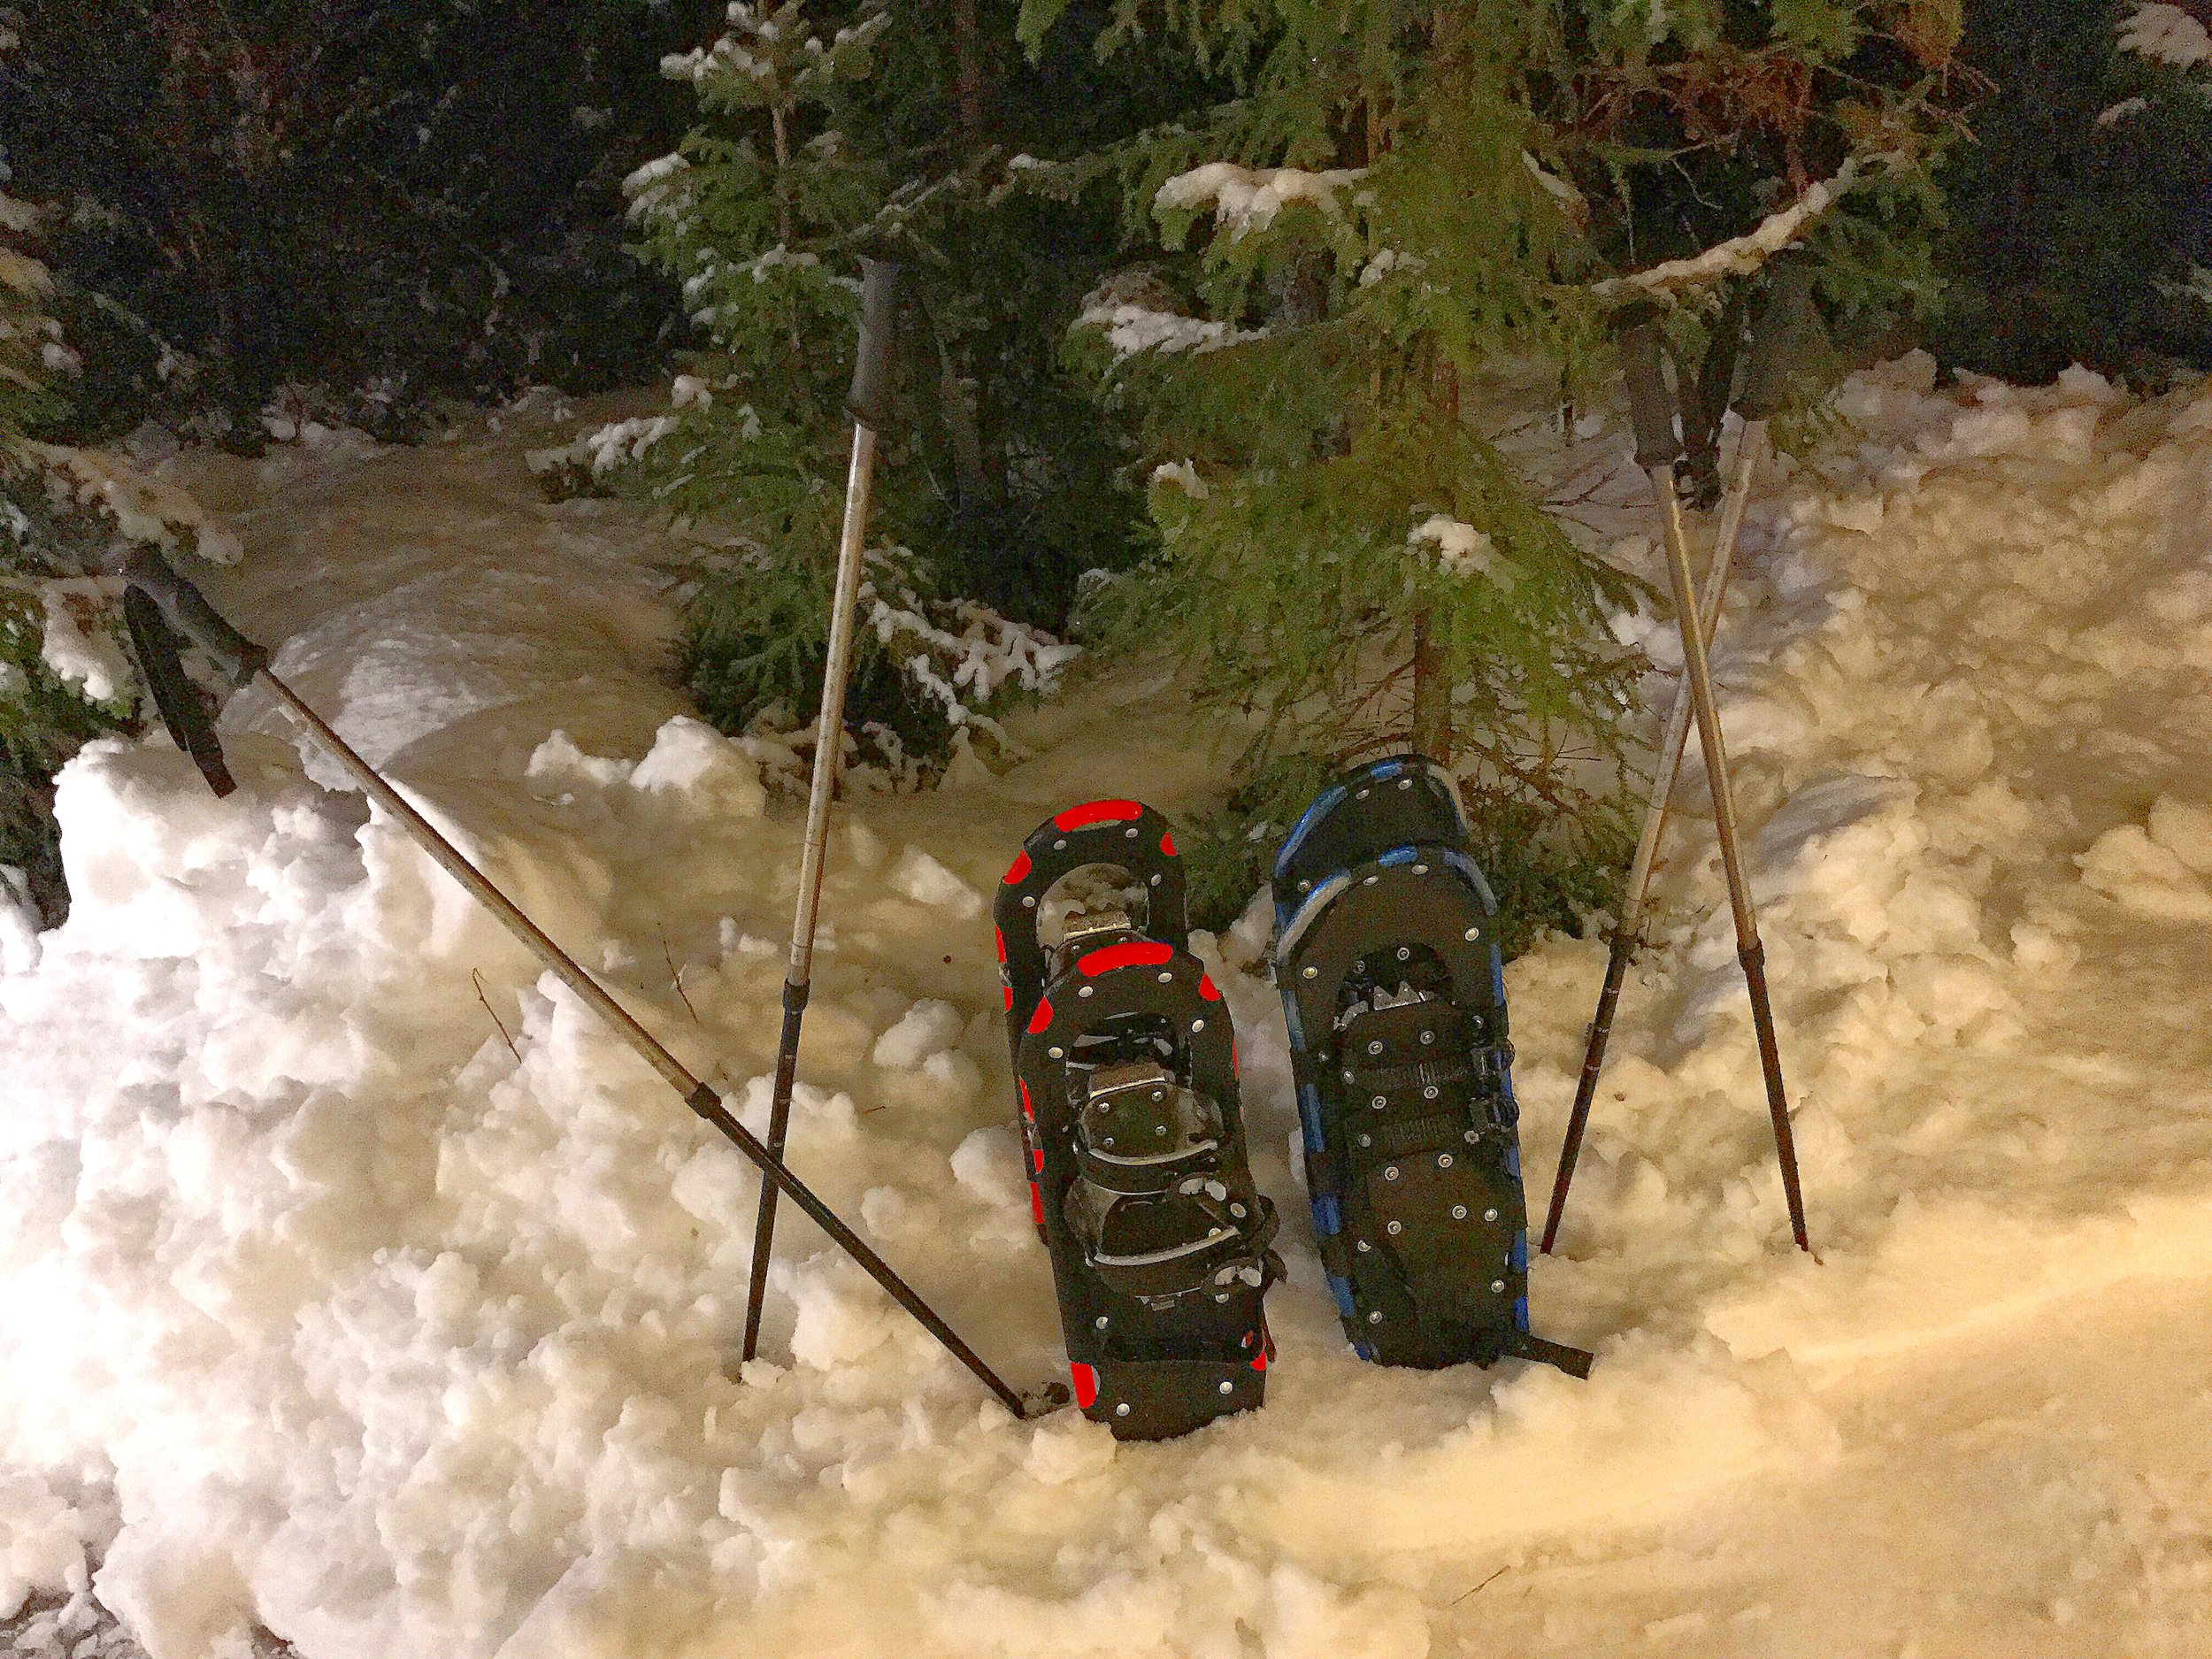 Norway Snowshoes.jpg